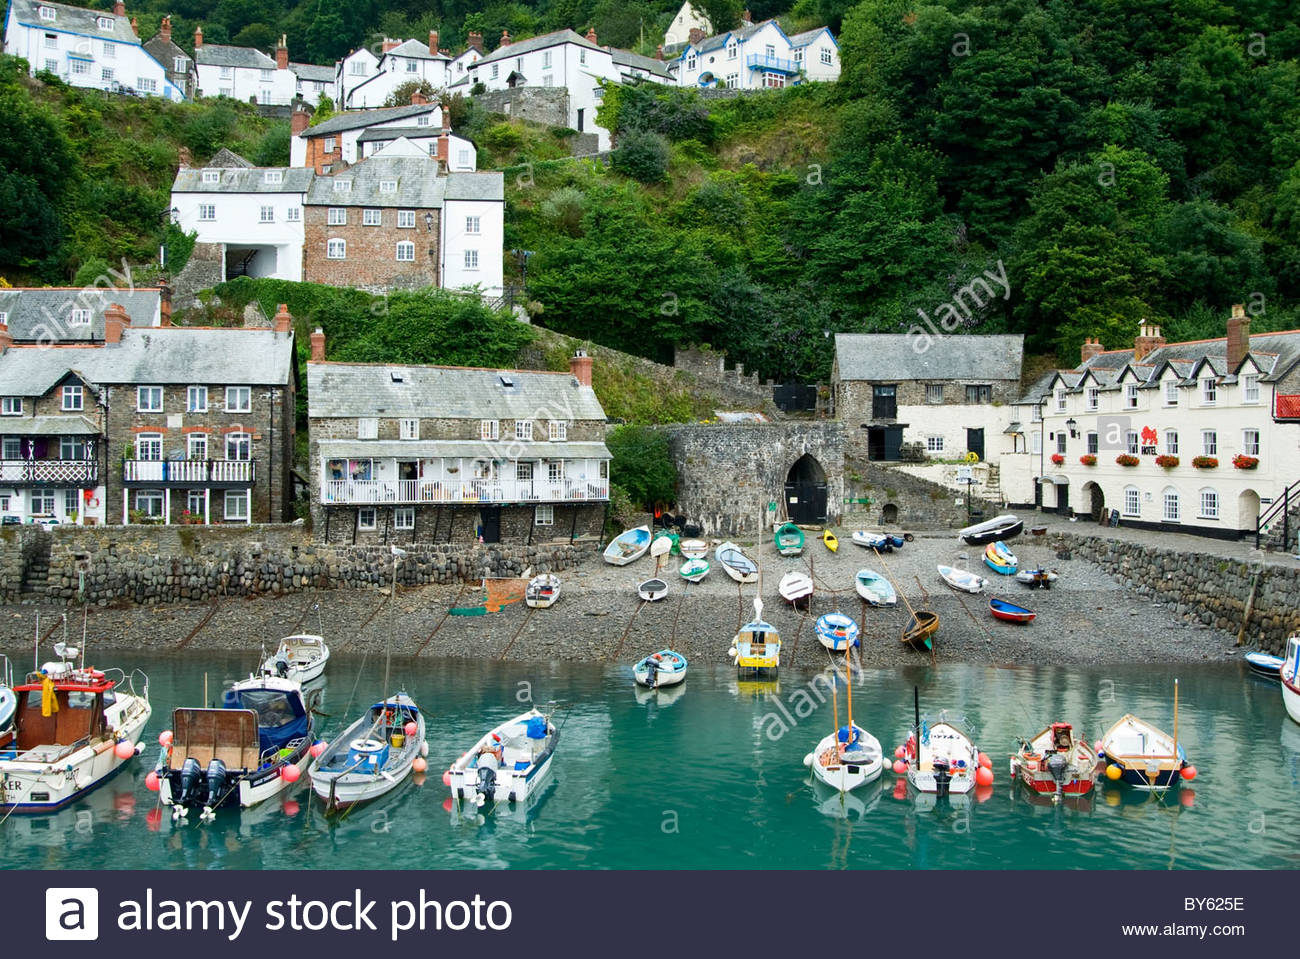 Sheltered harbour at Clovelly. Clovelly Court, Bideford, Devon, UK Stock Photo